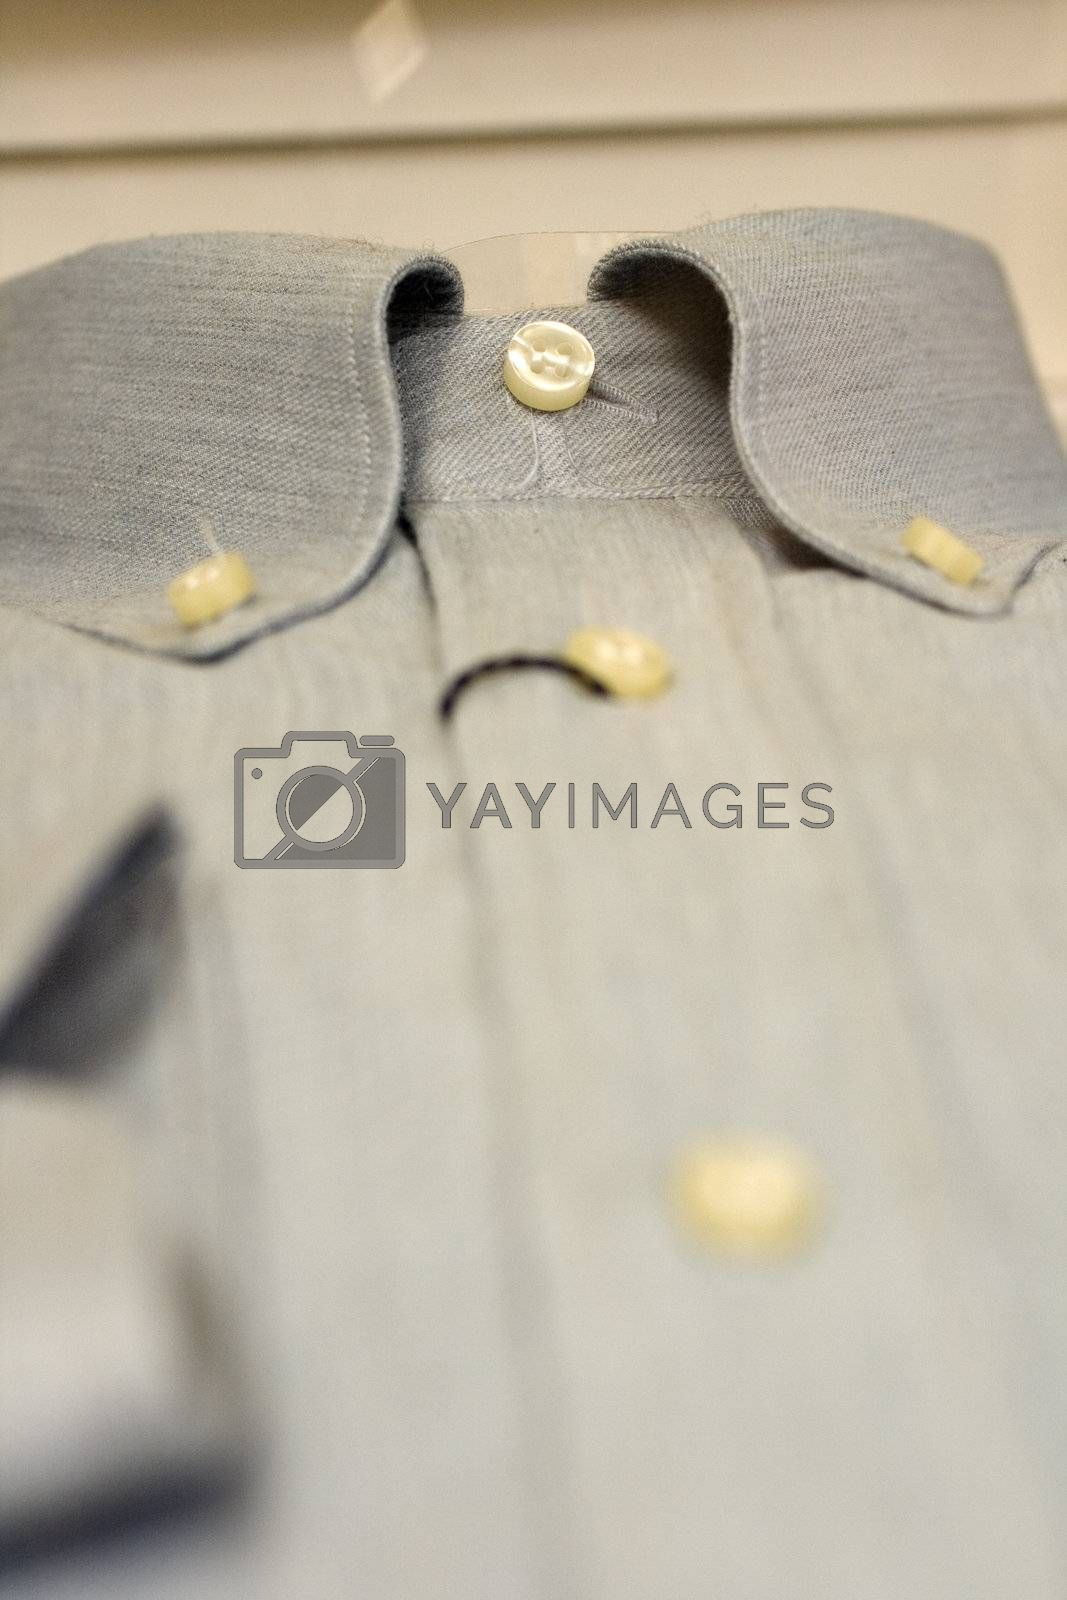 dress shirt in jeans, Made in italy